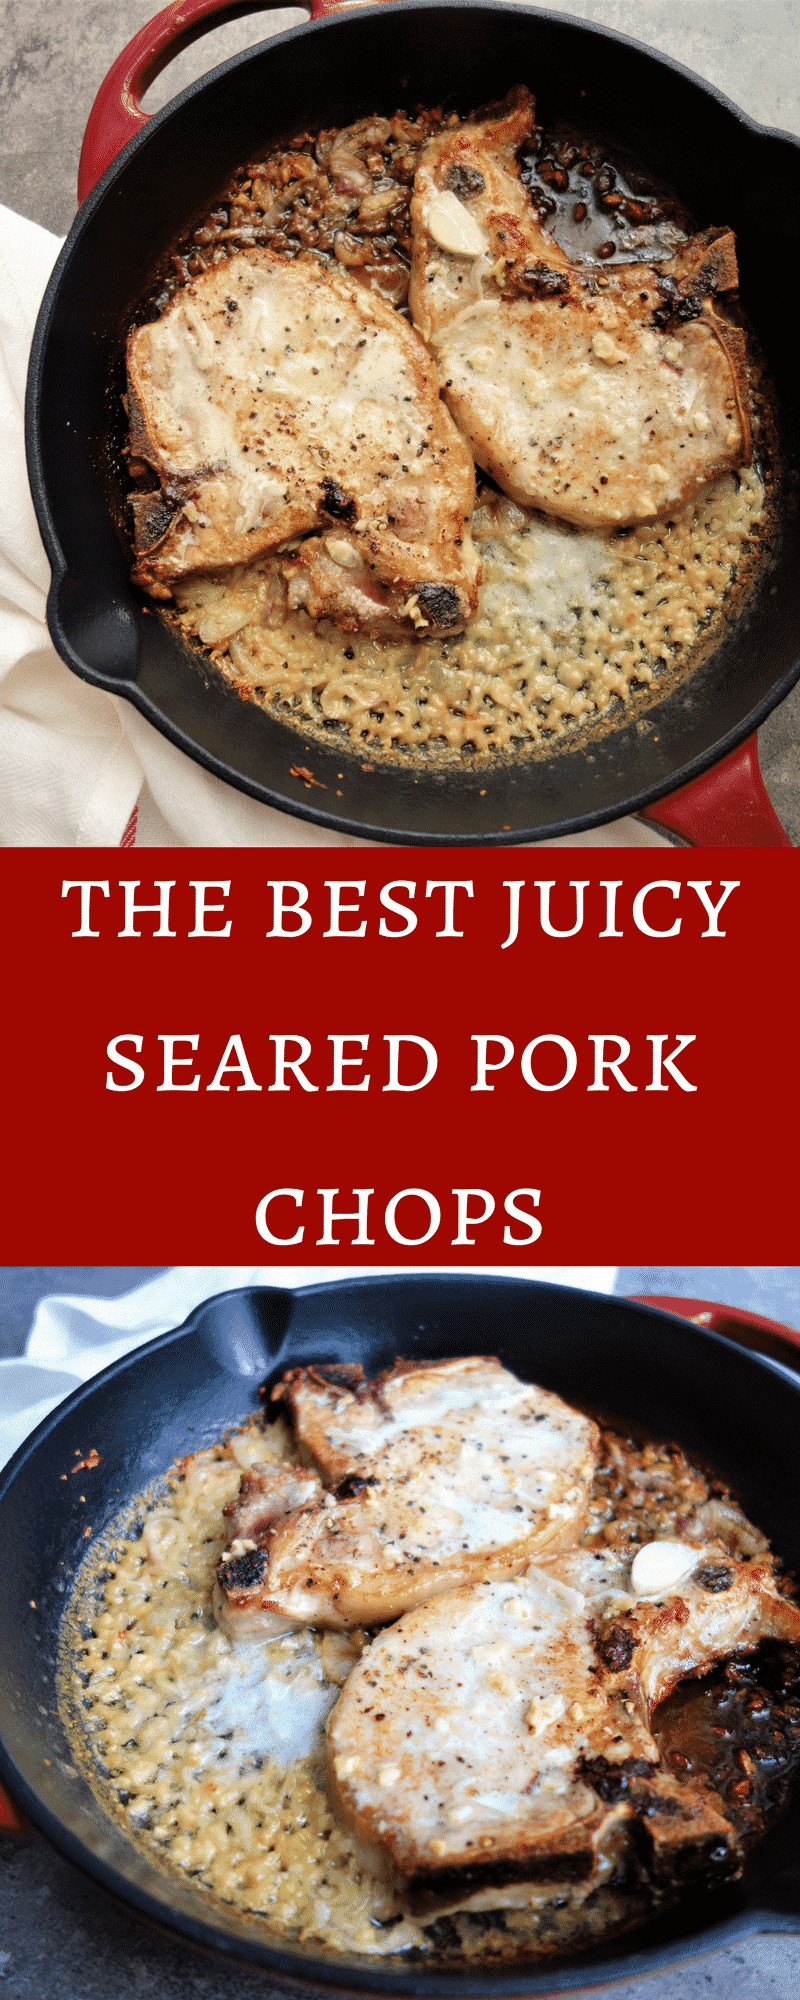 The Best Juicy Seared Pork Chops with Creamy Shallot and garlic Sauce.